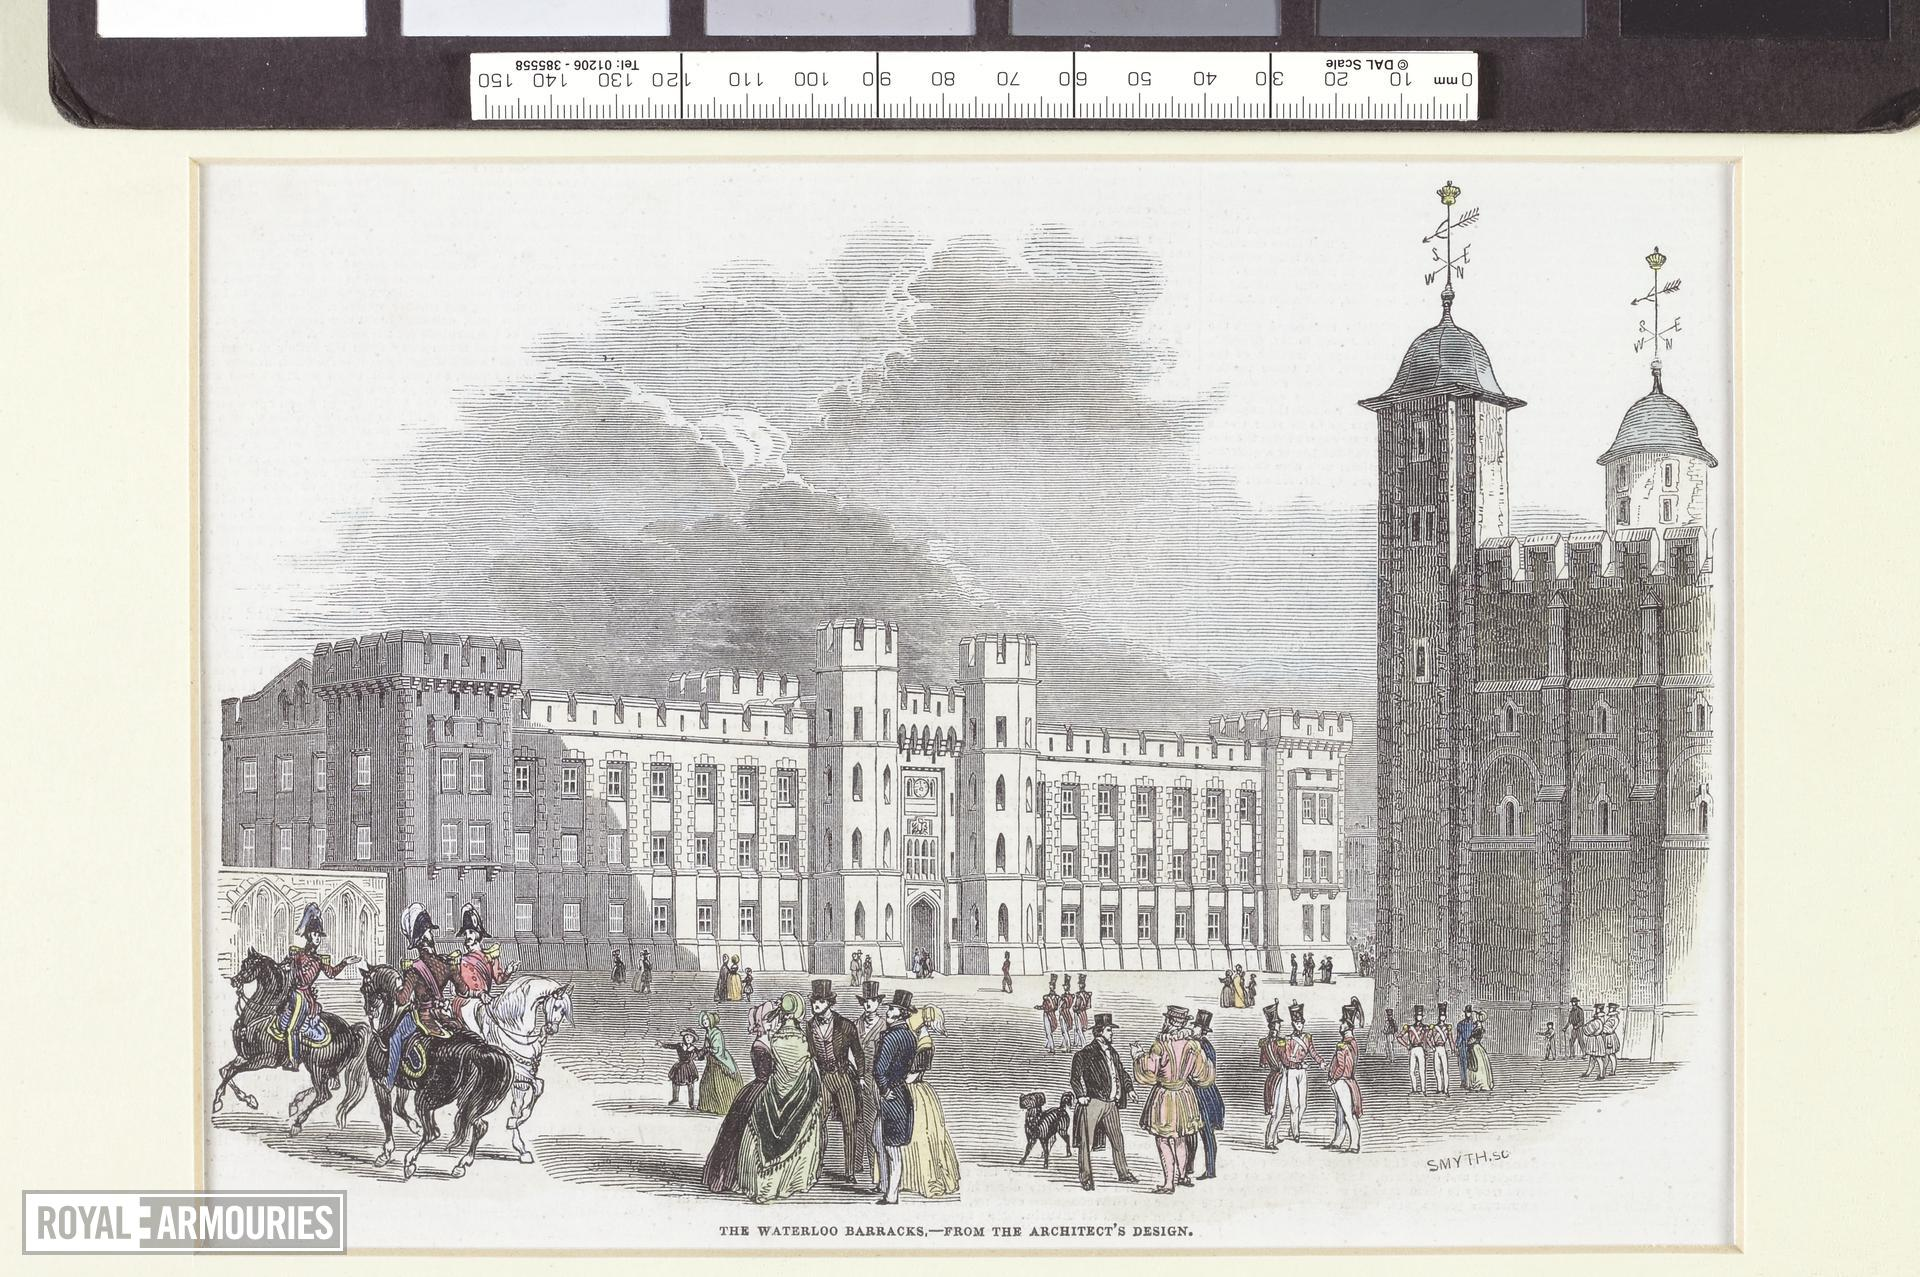 Illustration of proposed design for the Waterloo Barracks